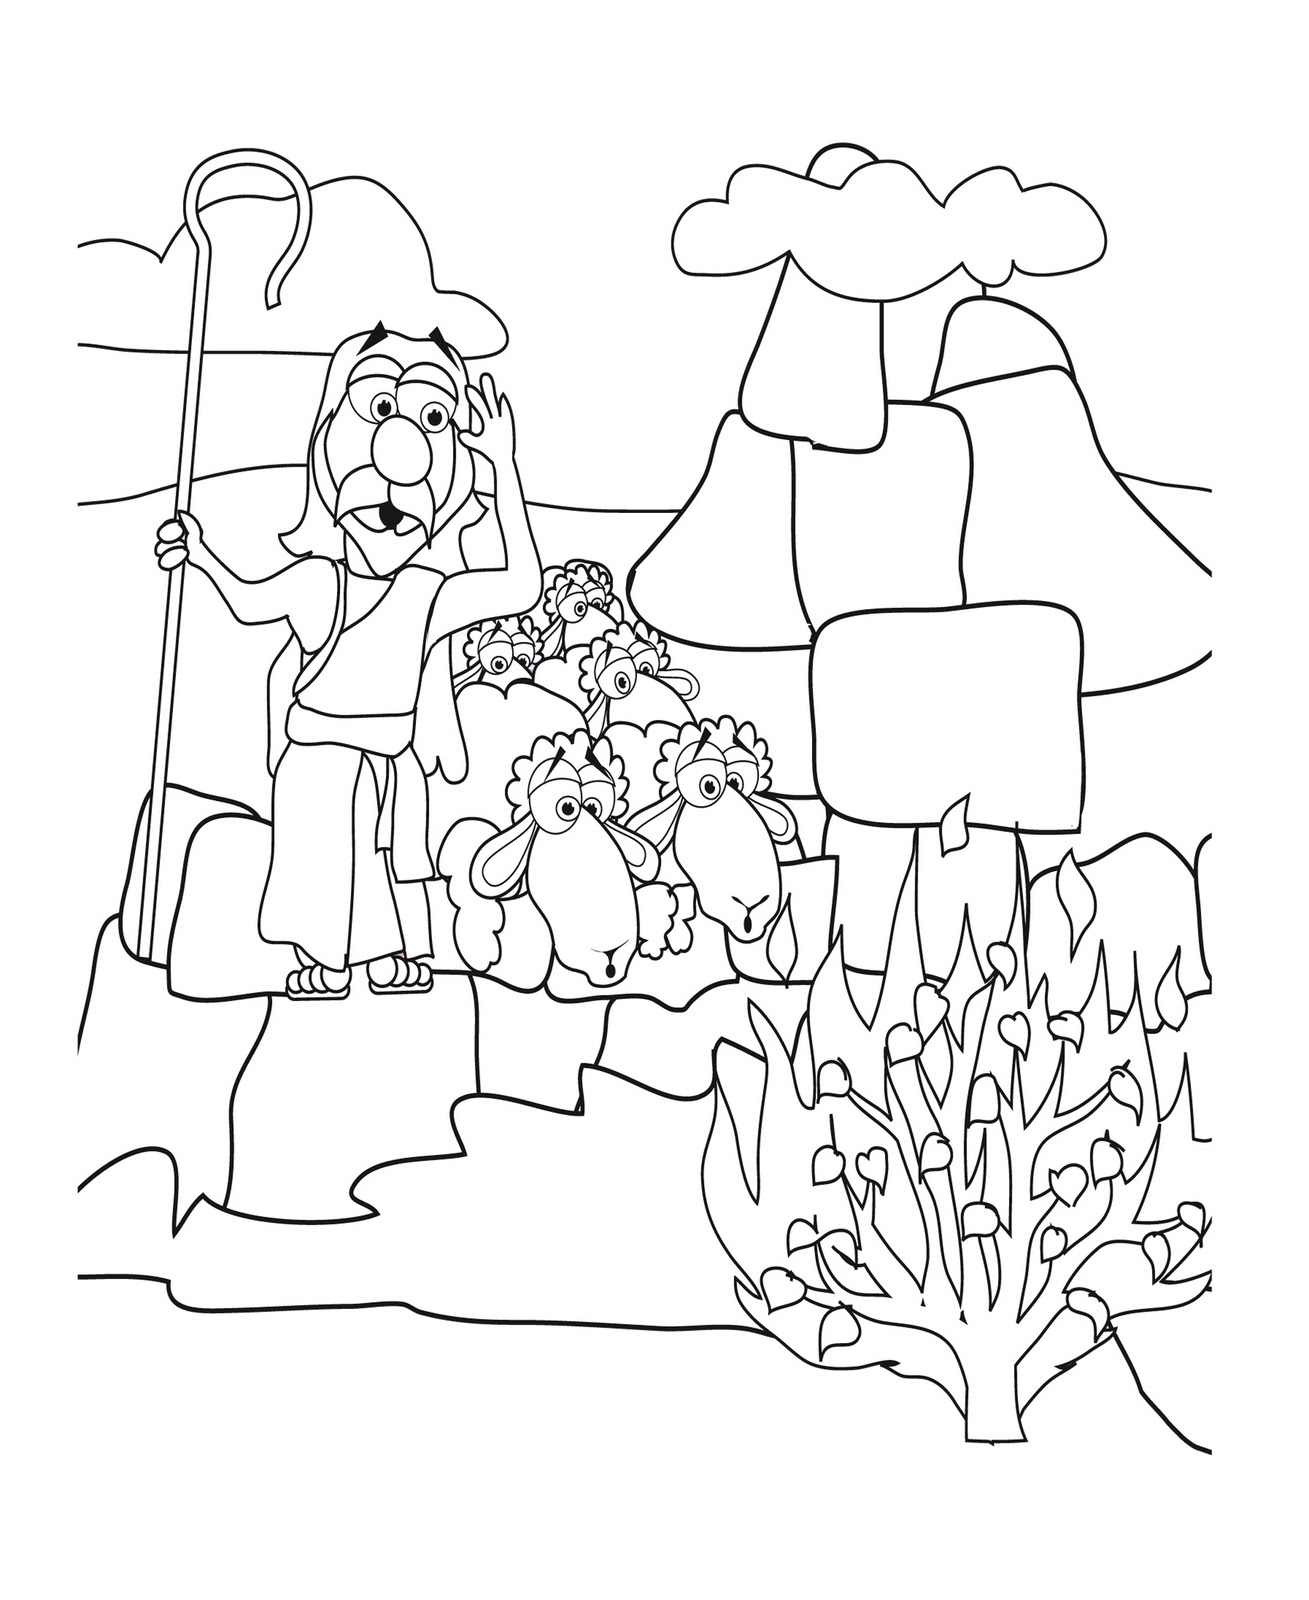 The Moses Leading Israelites Out Of Egypt Clip Art Cliparts